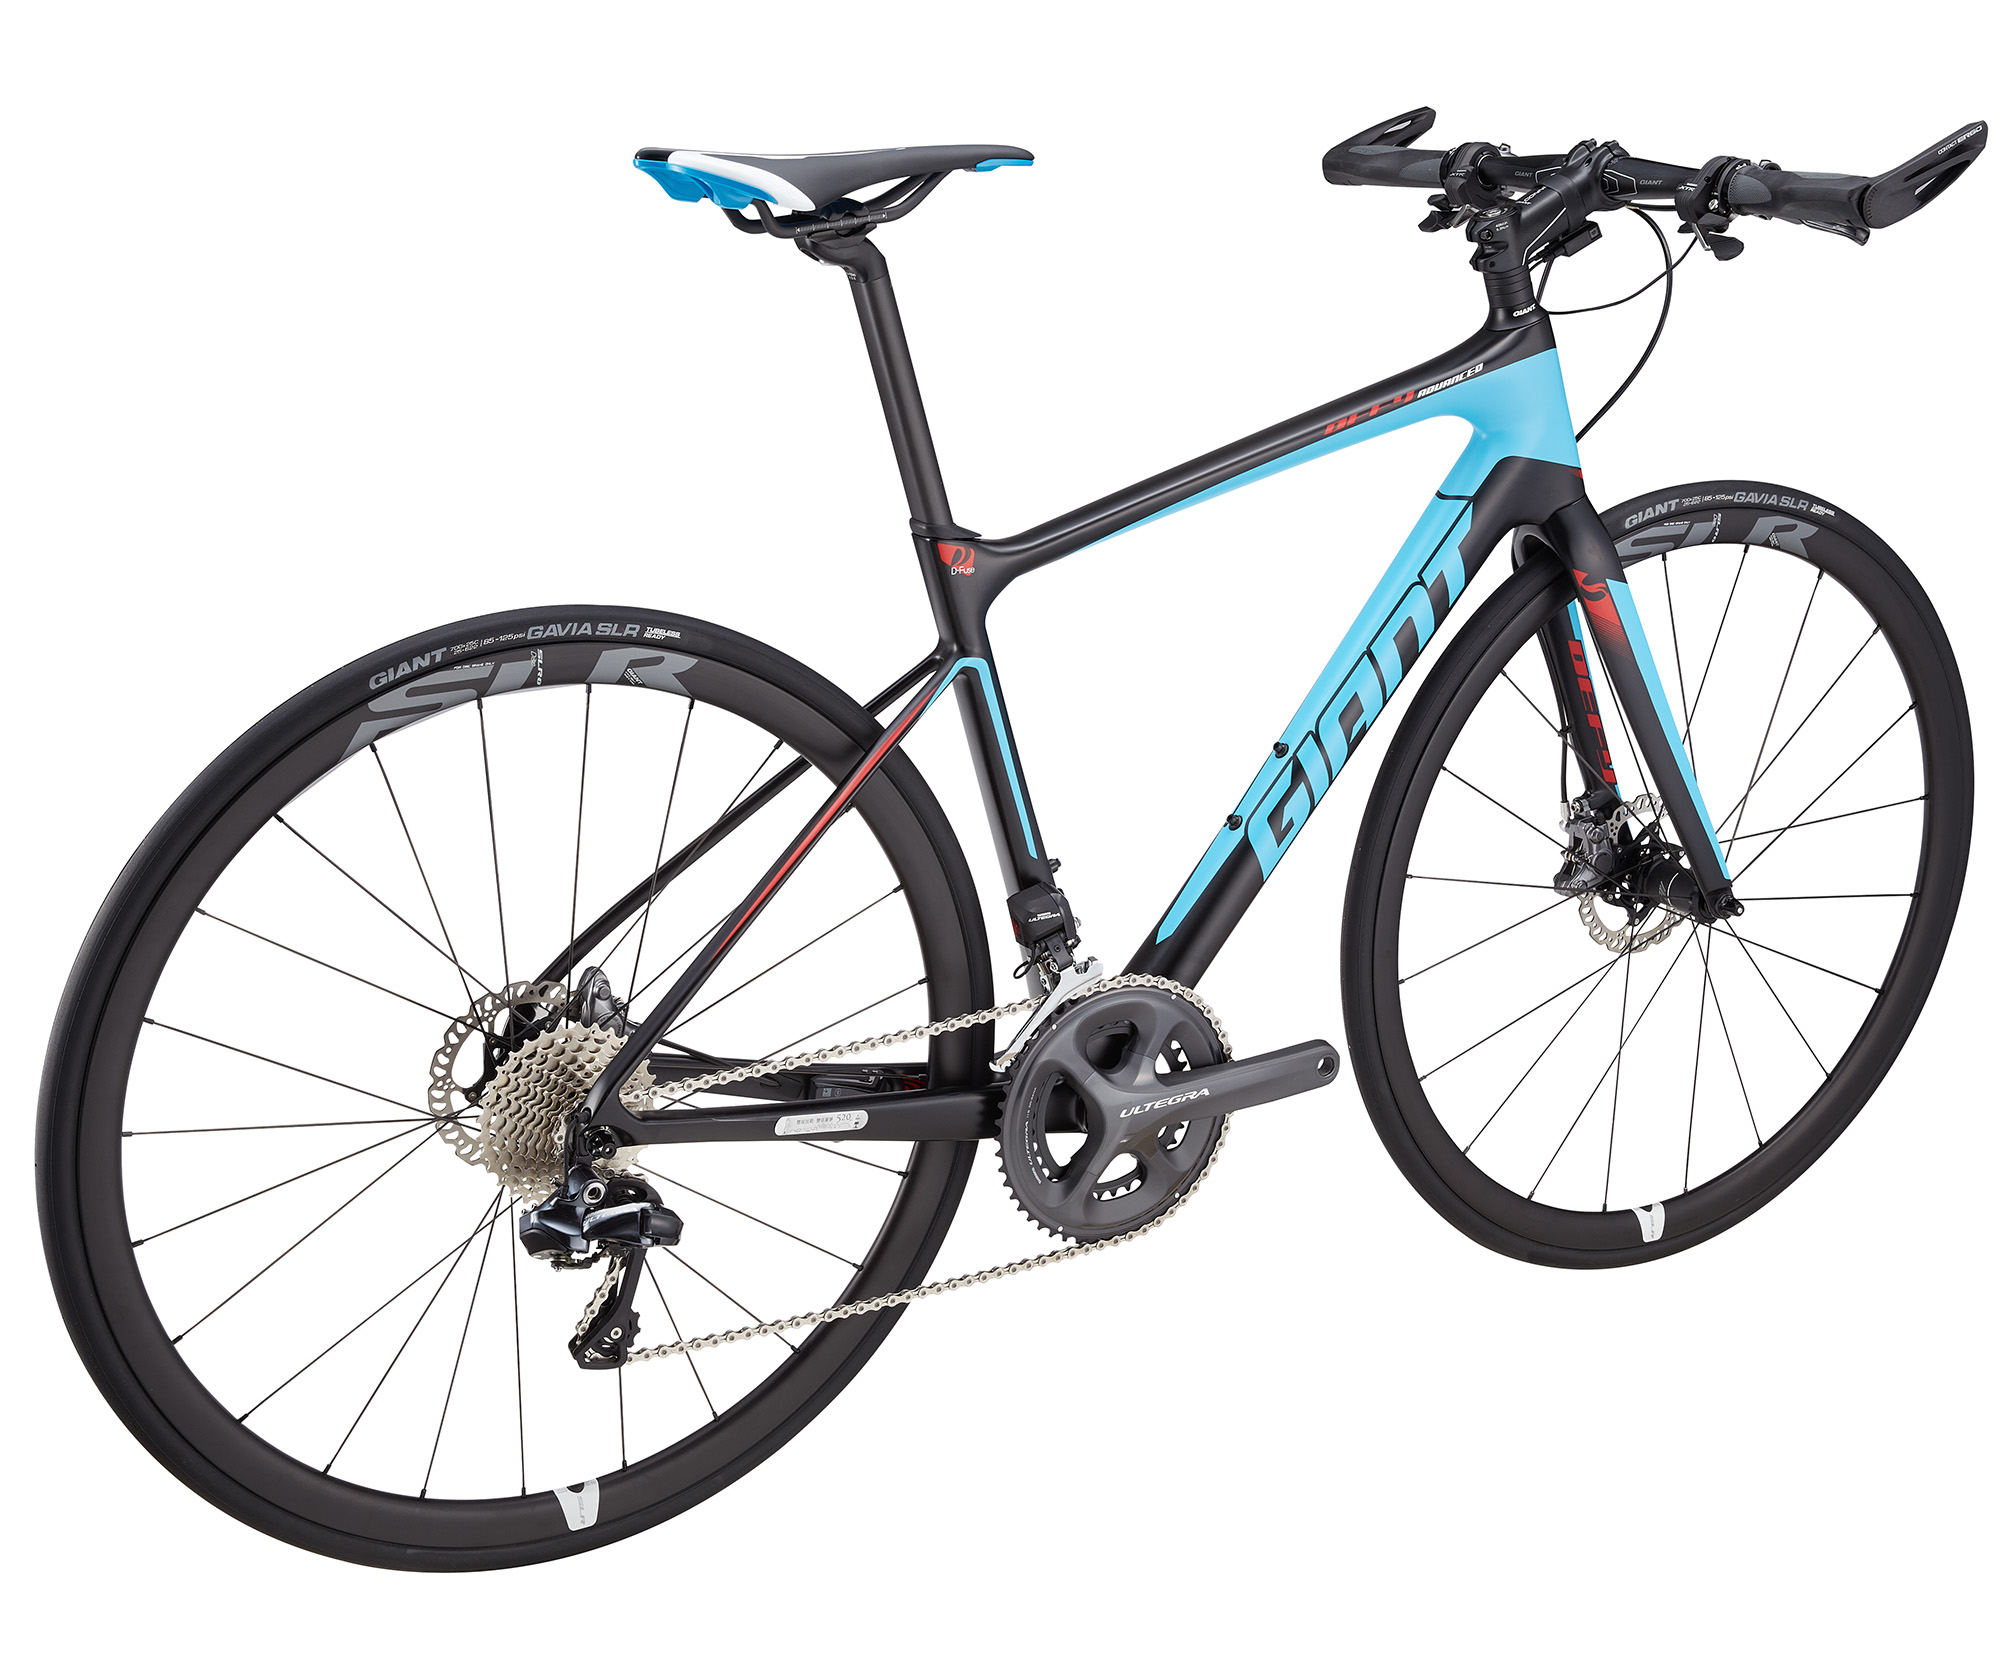 DEFY ADVANCED F -ULTEGRA DI2